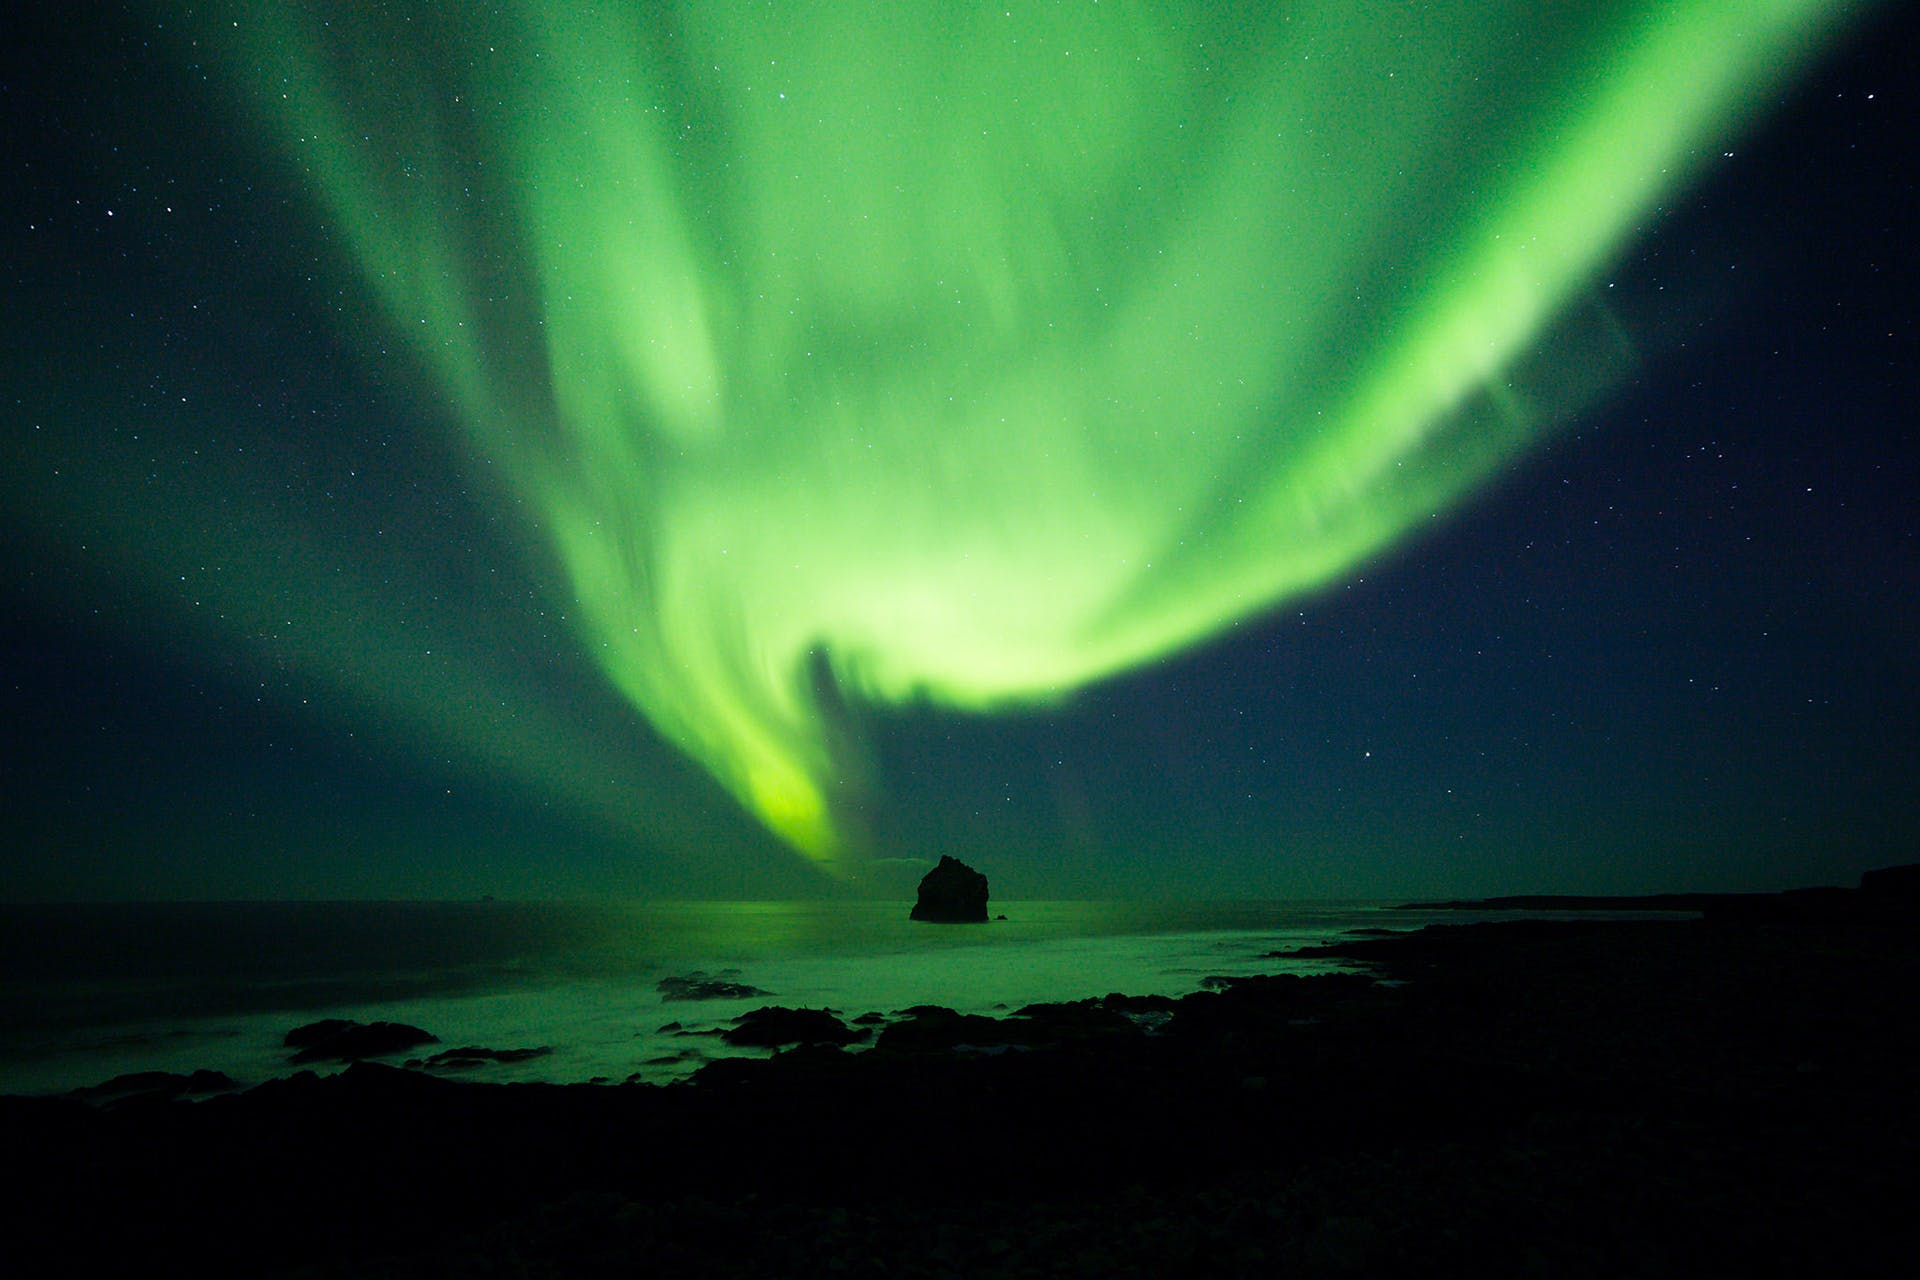 One of the amazing picture of Northern Lights in Iceland by Jeroen.